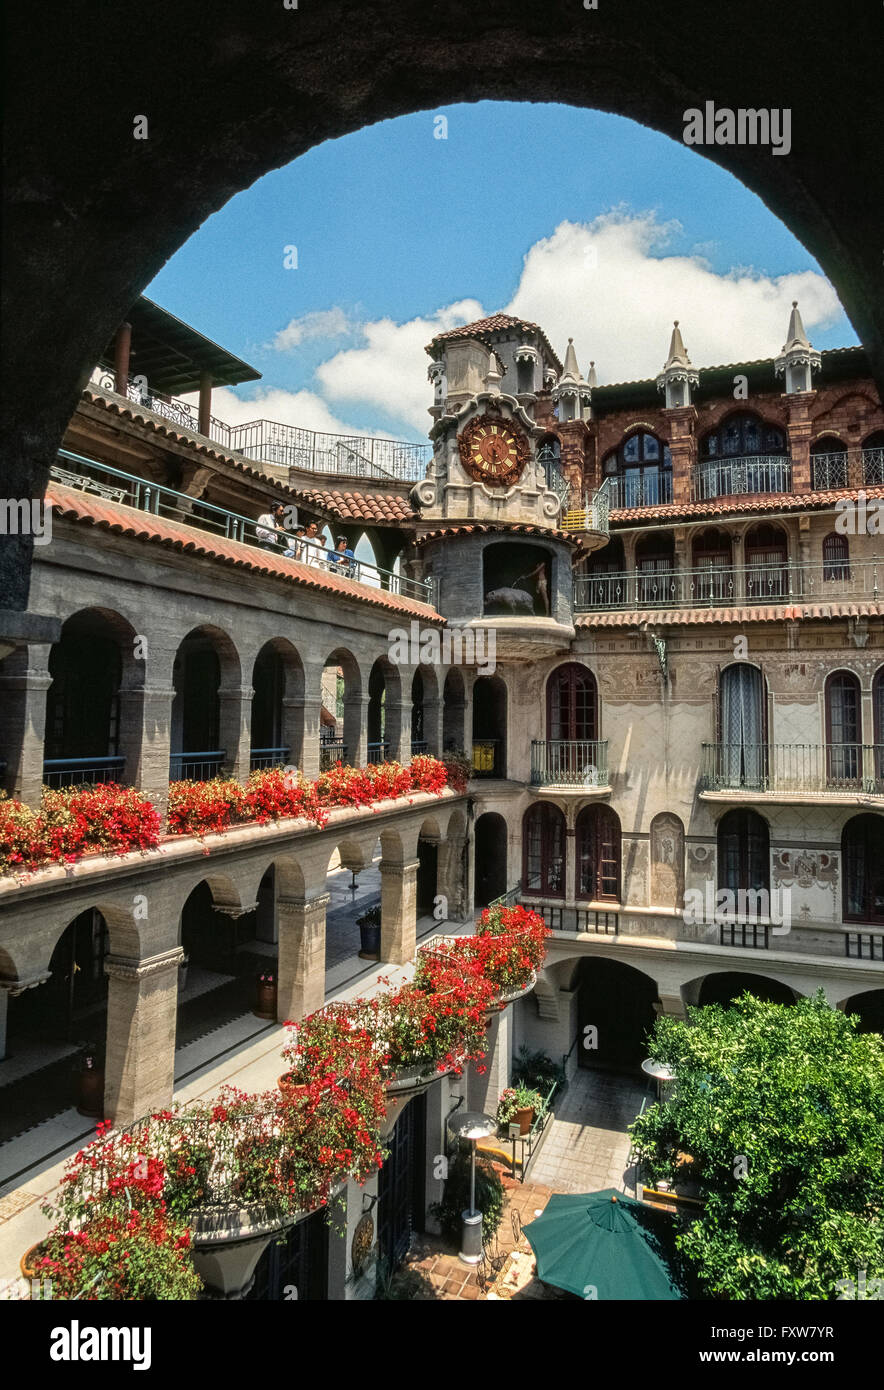 The historic Mission Inn that has long attracted U.S. Presidents, royalty, movie stars and business tycoons to the - Stock Image